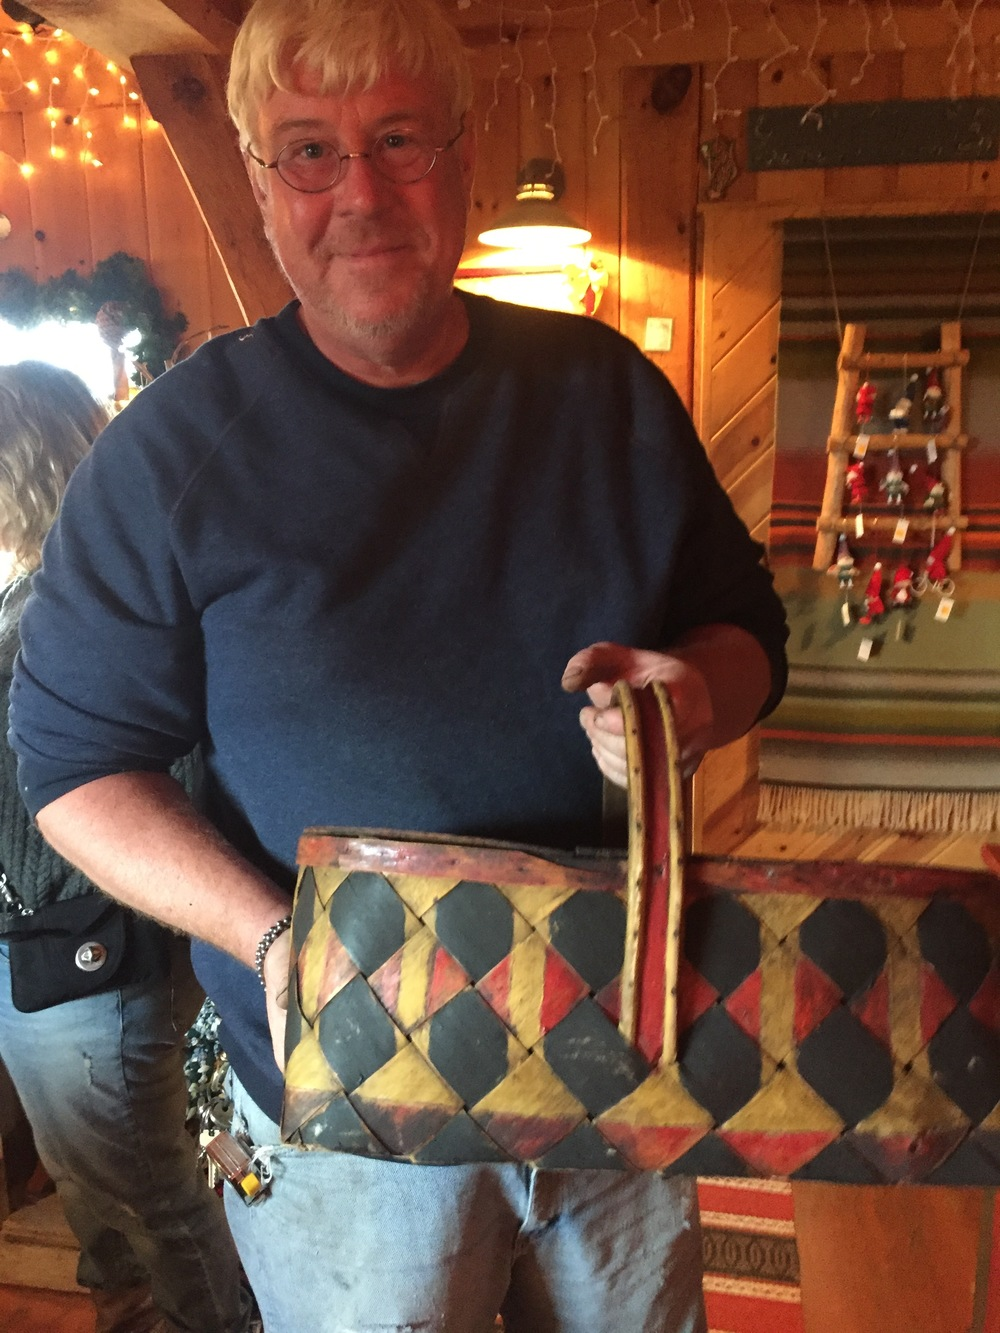 Brad and an antique, Finnish lunch basket for the former train workers.